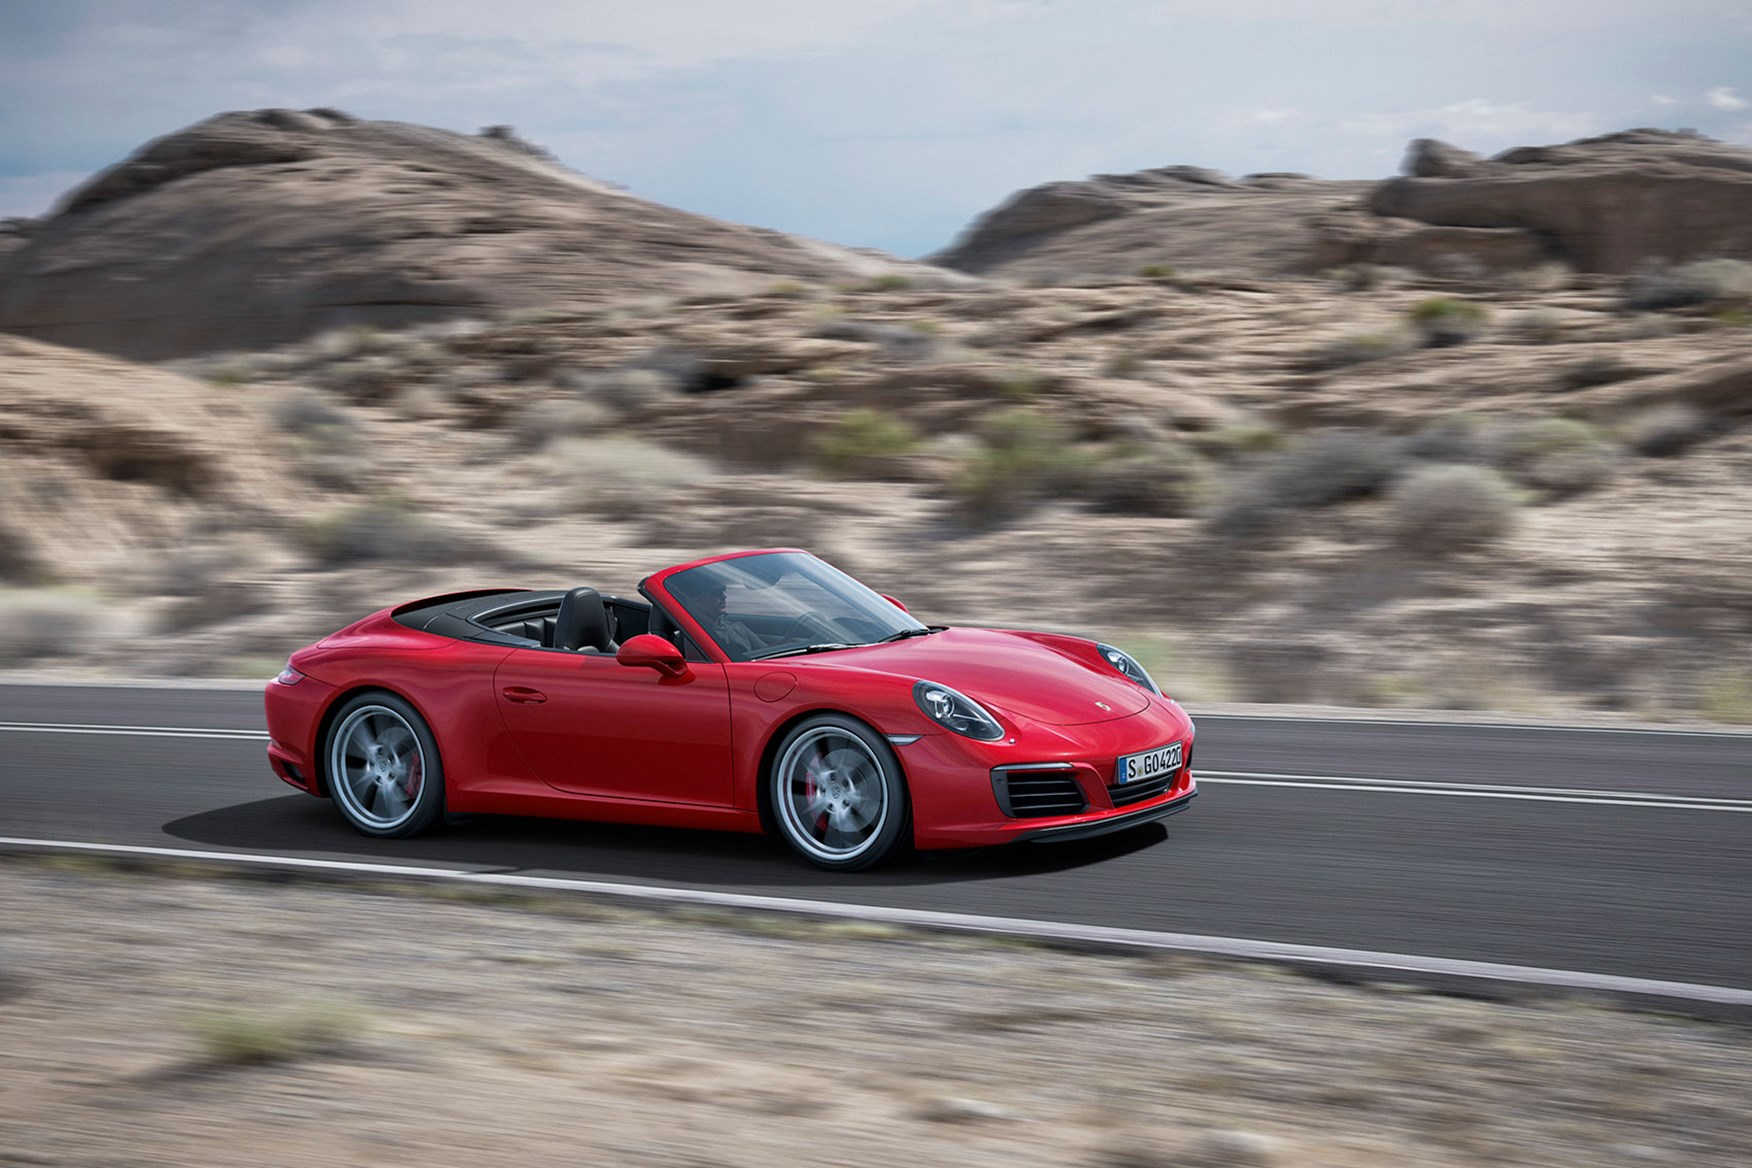 New 2016 Porsche 911 blows in turbos all round for 991